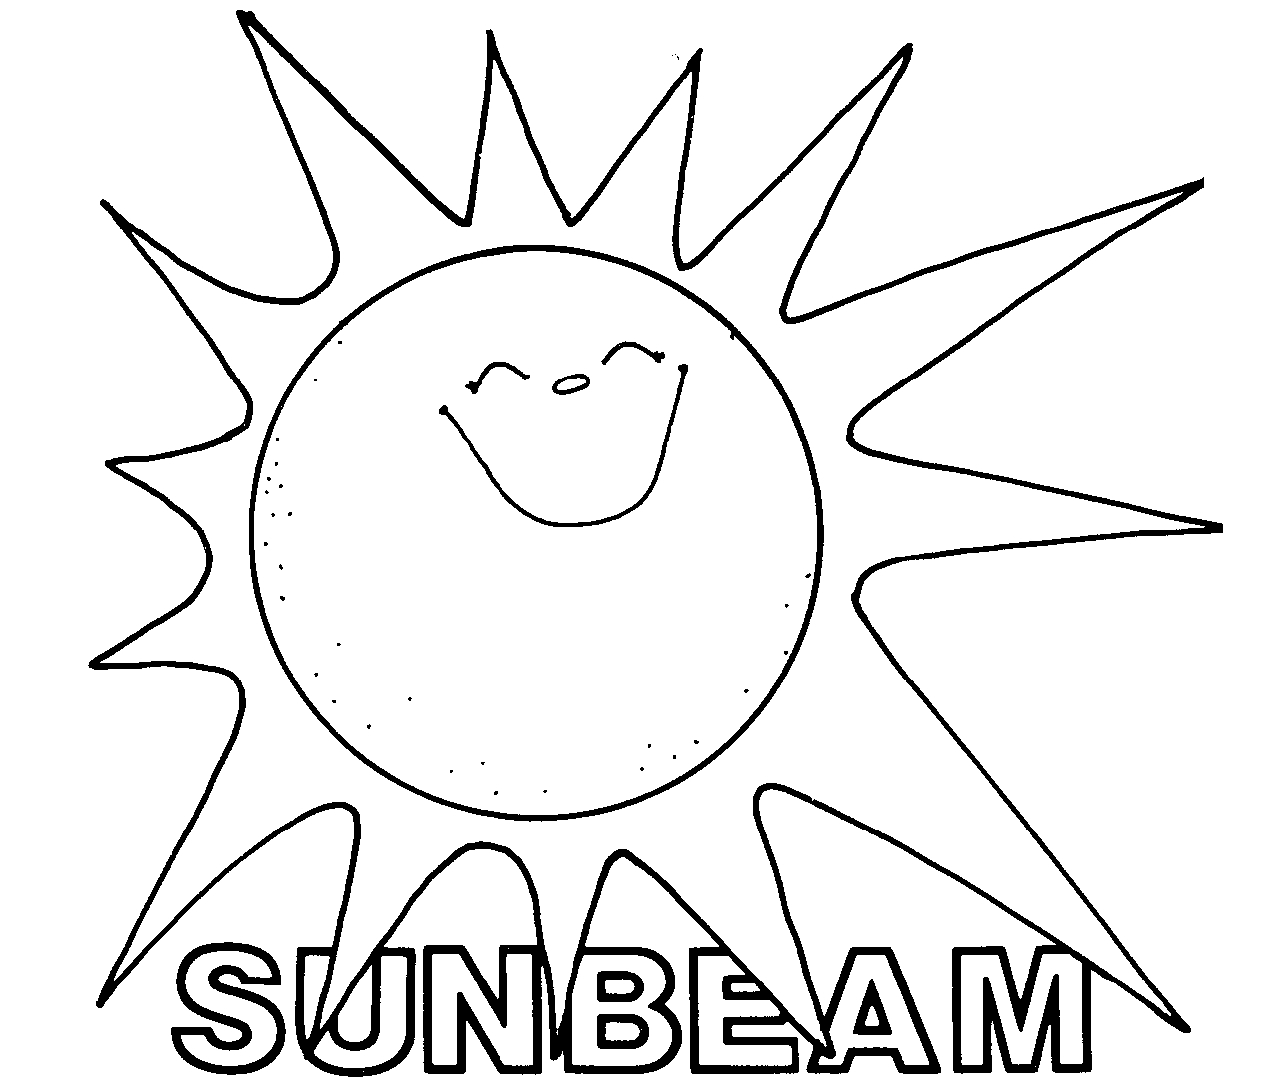 Sunbeam clipart } Share cg_sunbeam Mormon Sunbeam